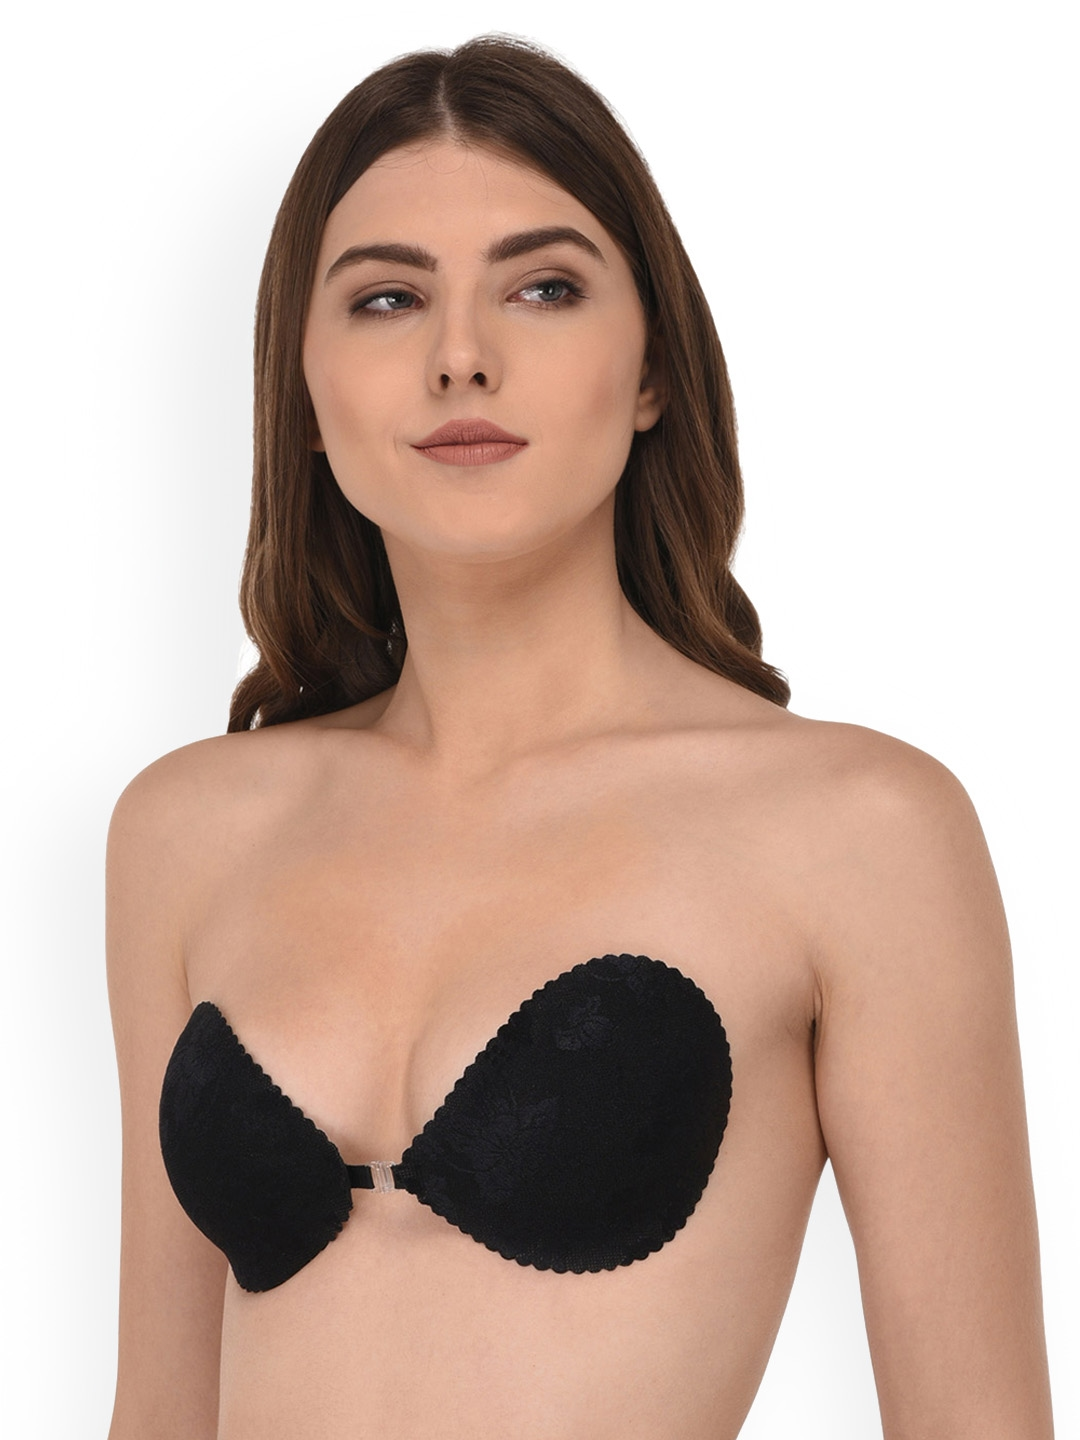 a474cba8b0fdb Quttos Black Printed Non-Wired Lightly Padded Push-Up Bra  QT BR STI SLF BLK 36B